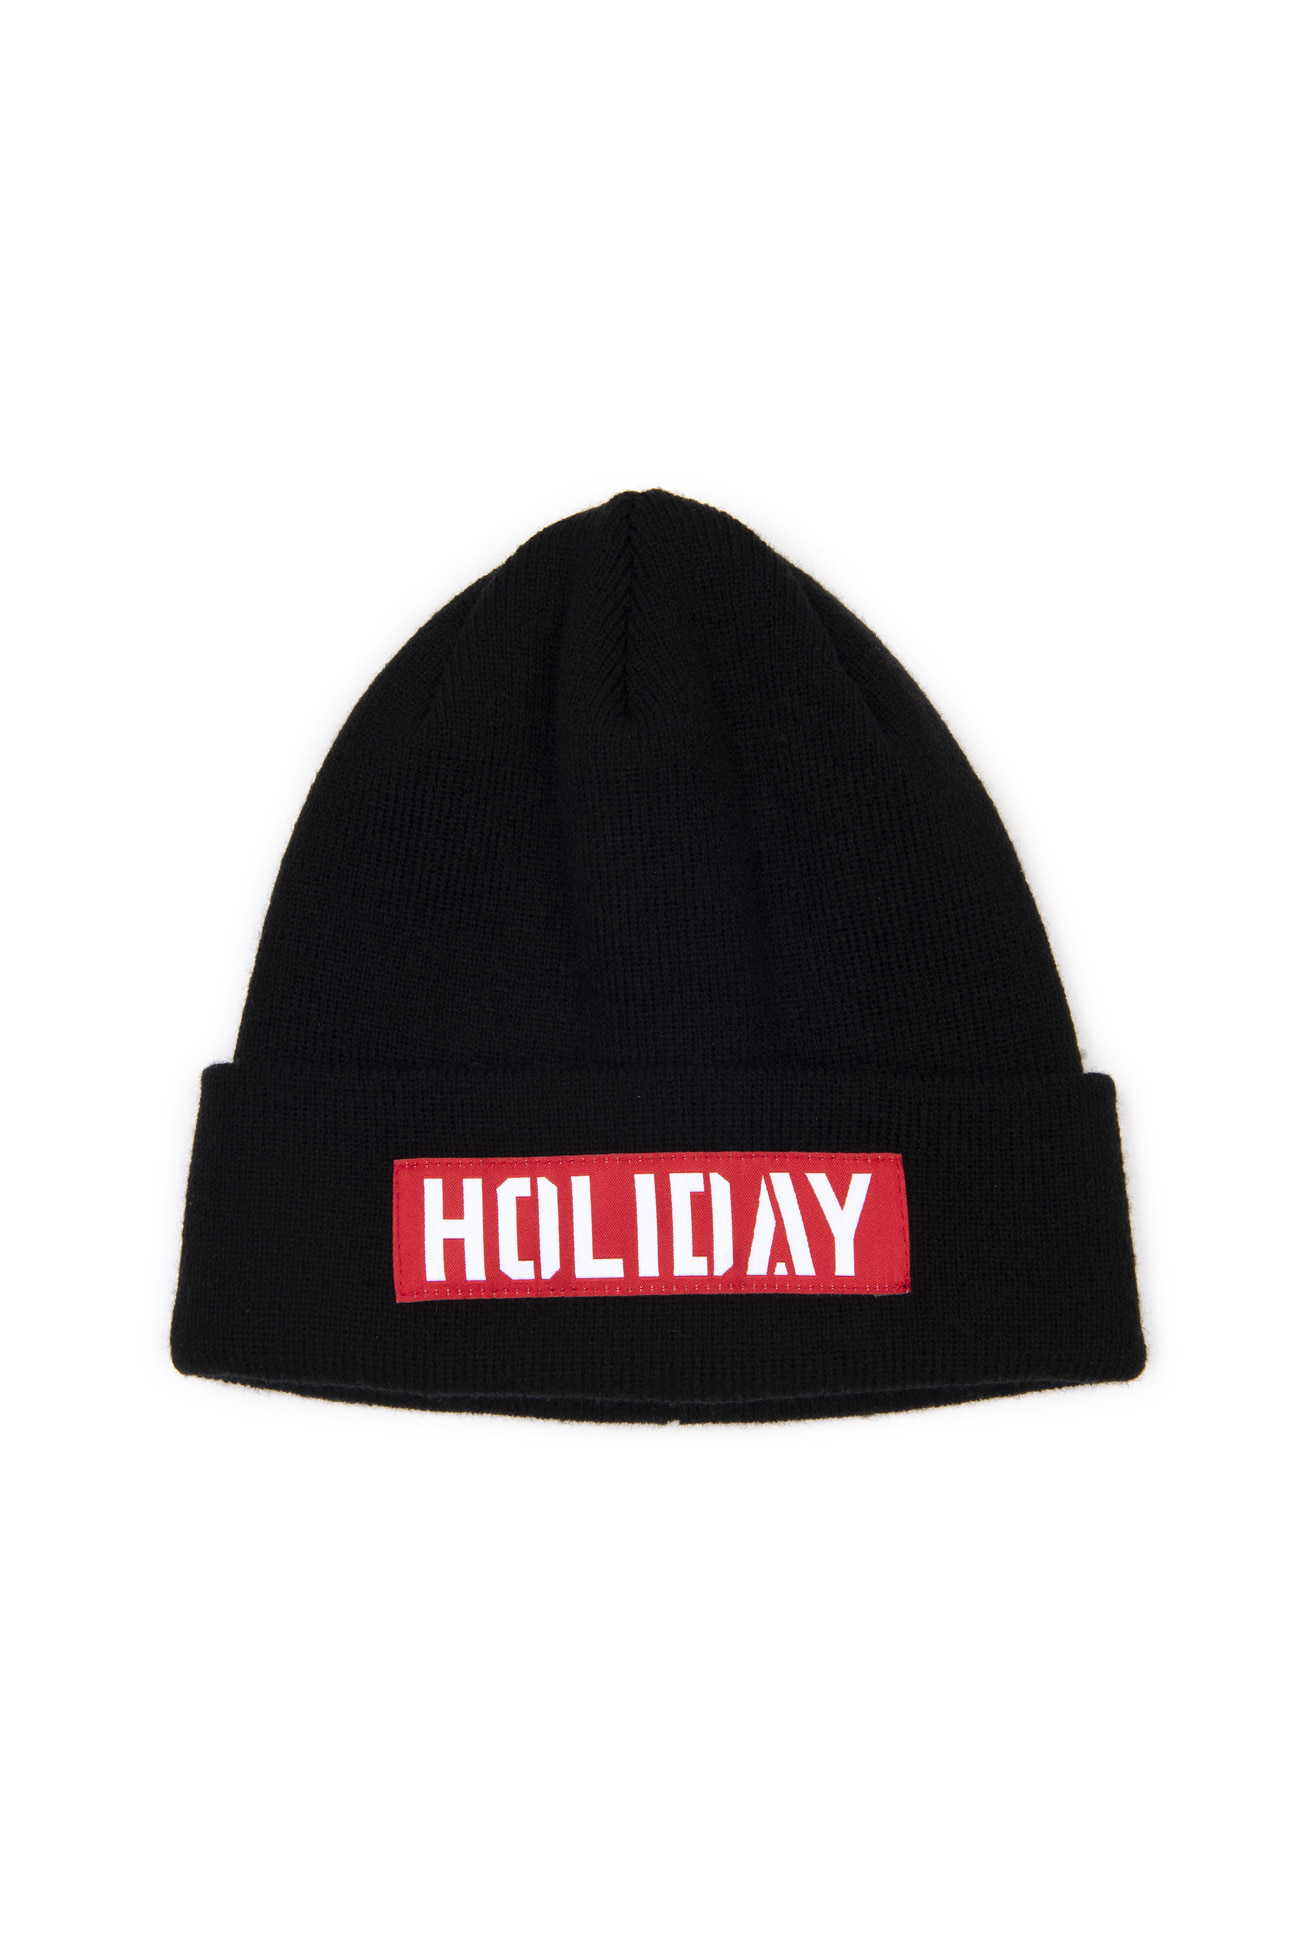 TEAM beanie - blackHOLIDAY OUTERWEAR